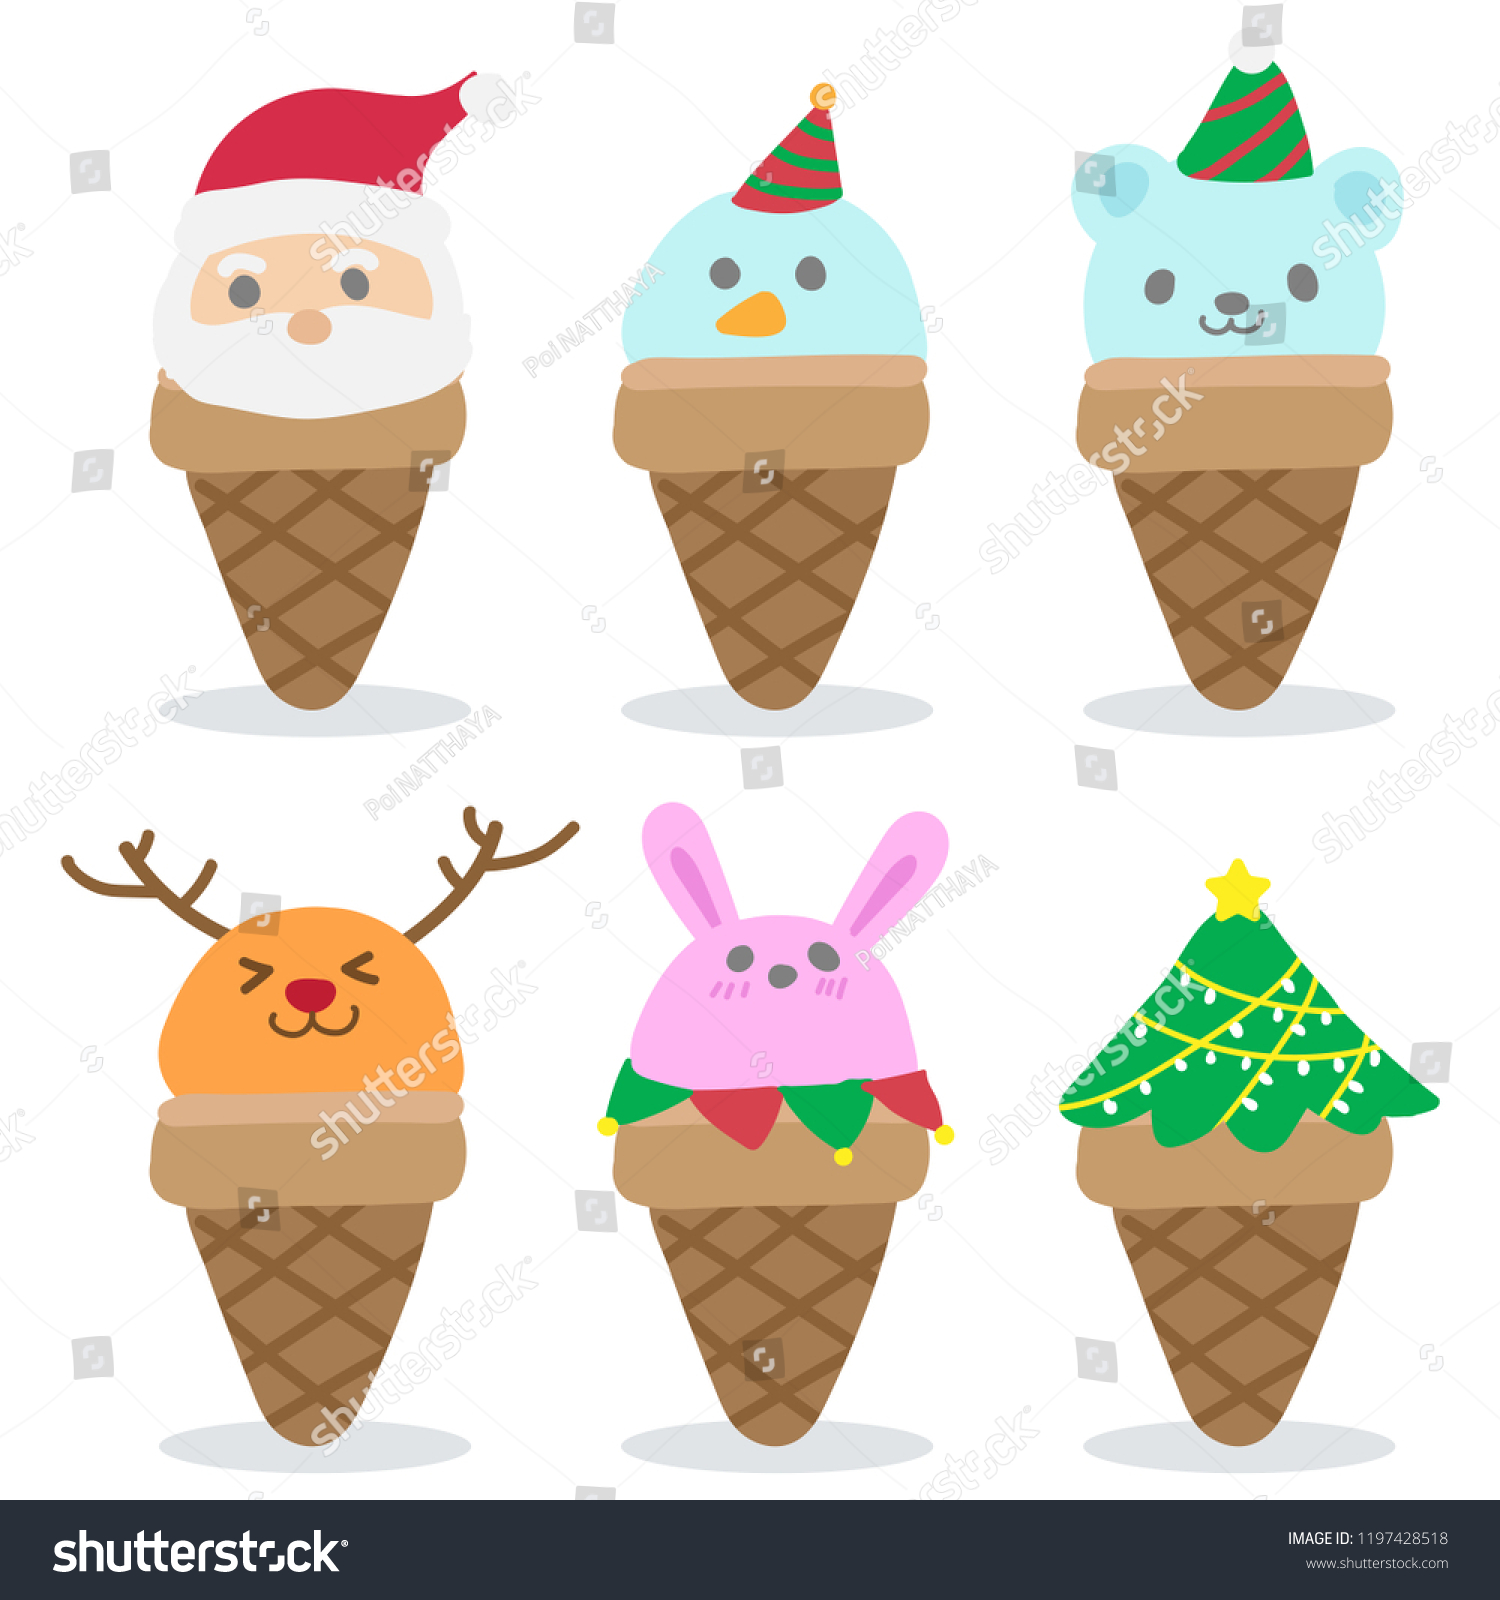 Set Christmas Cute Funny Ice Cream Stock Vector (Royalty Free ...